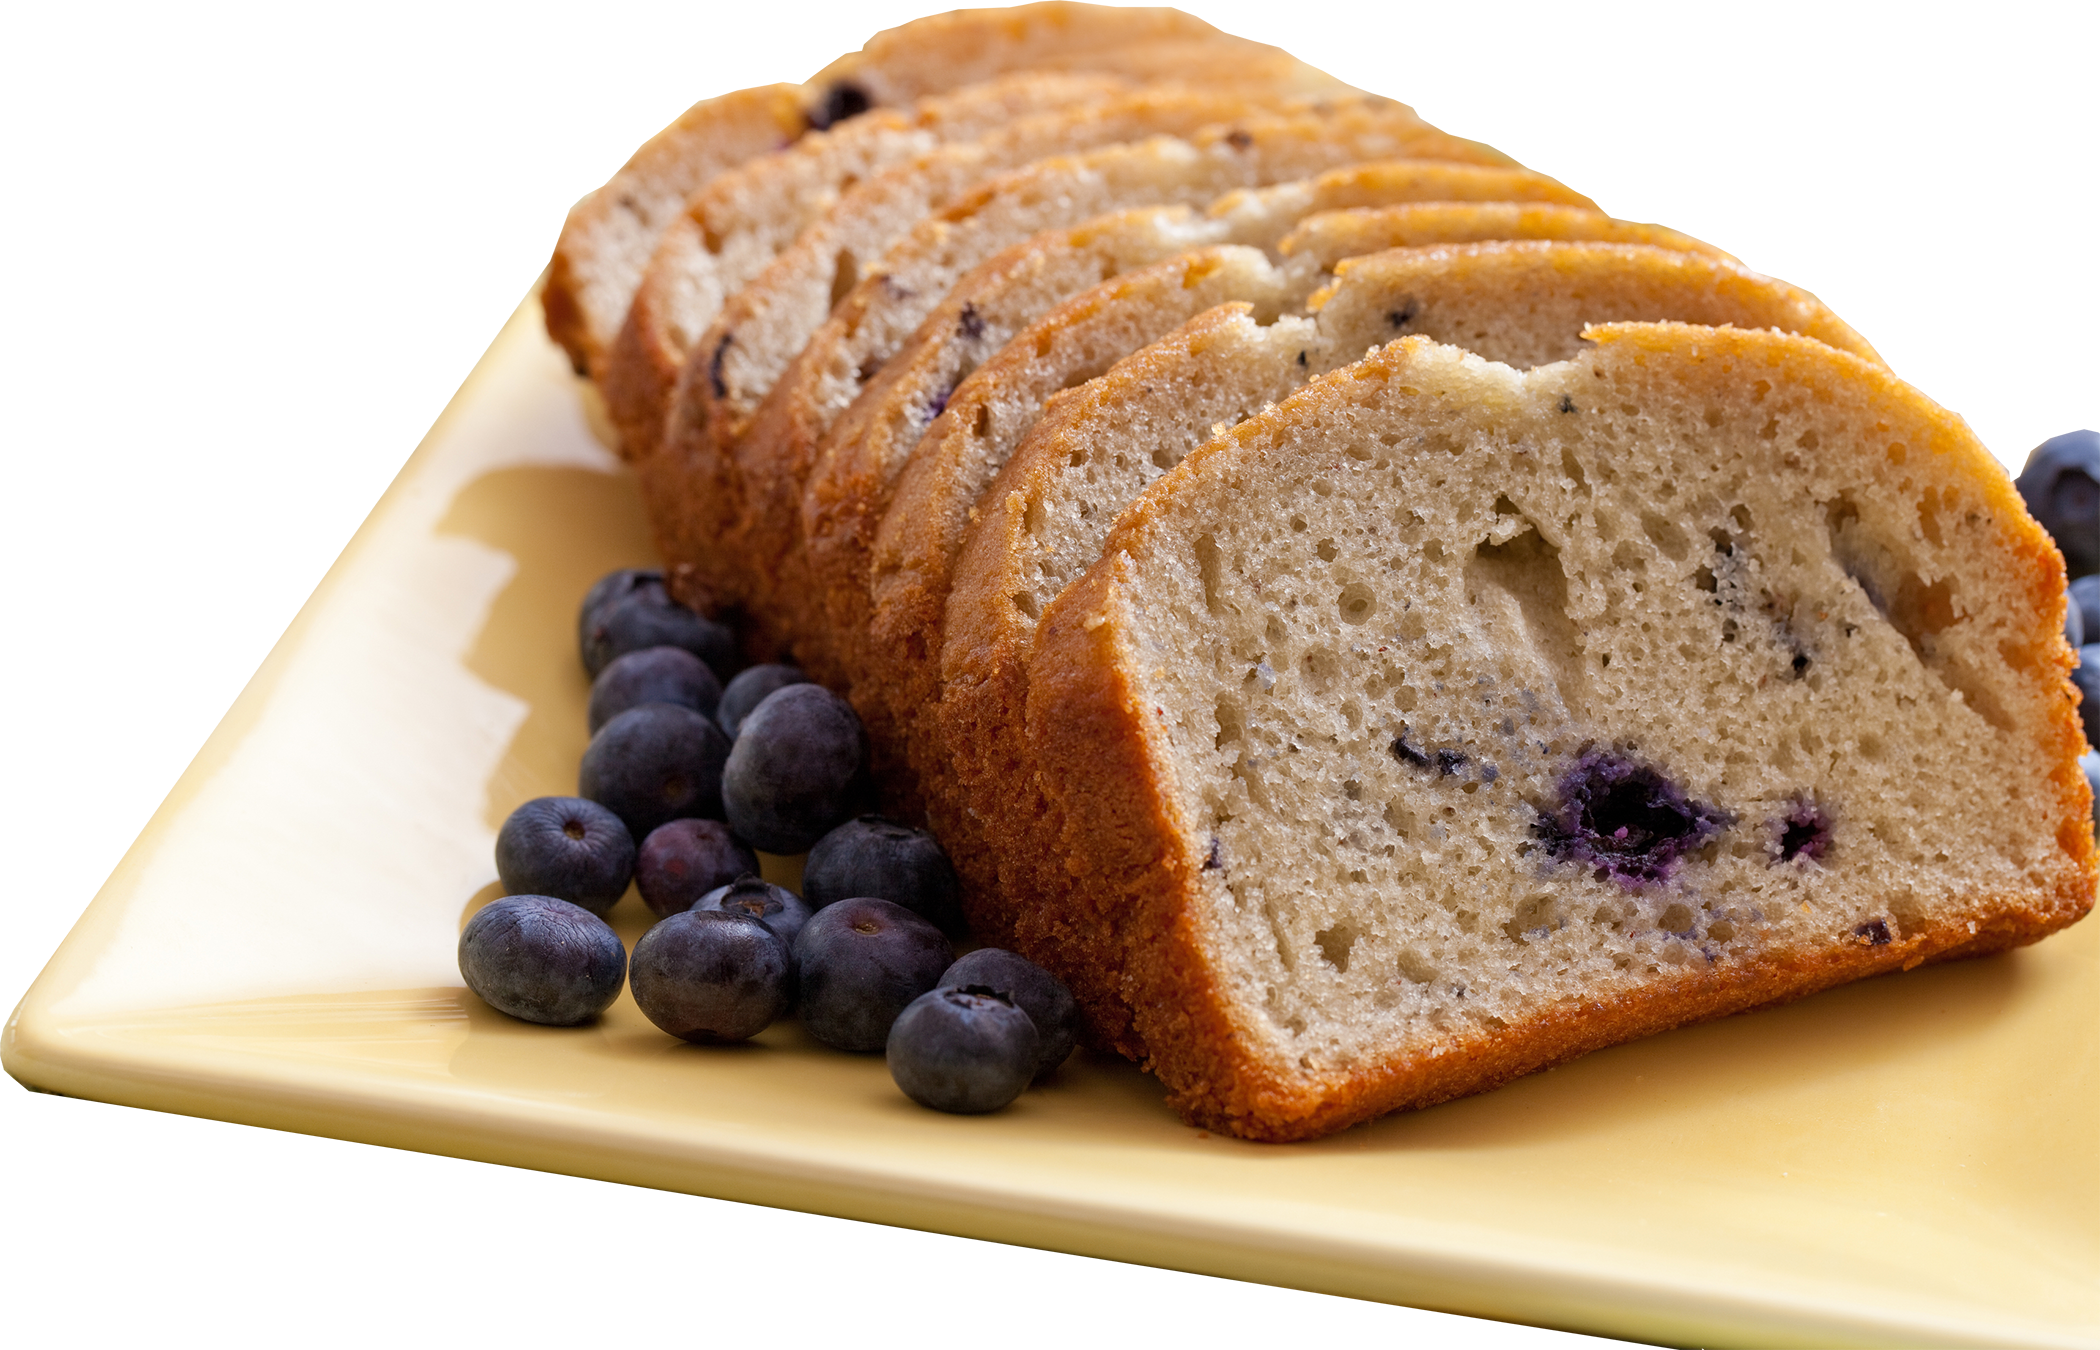 Grain Free, Gluten Free Blueberry Banana Breakfast Bread